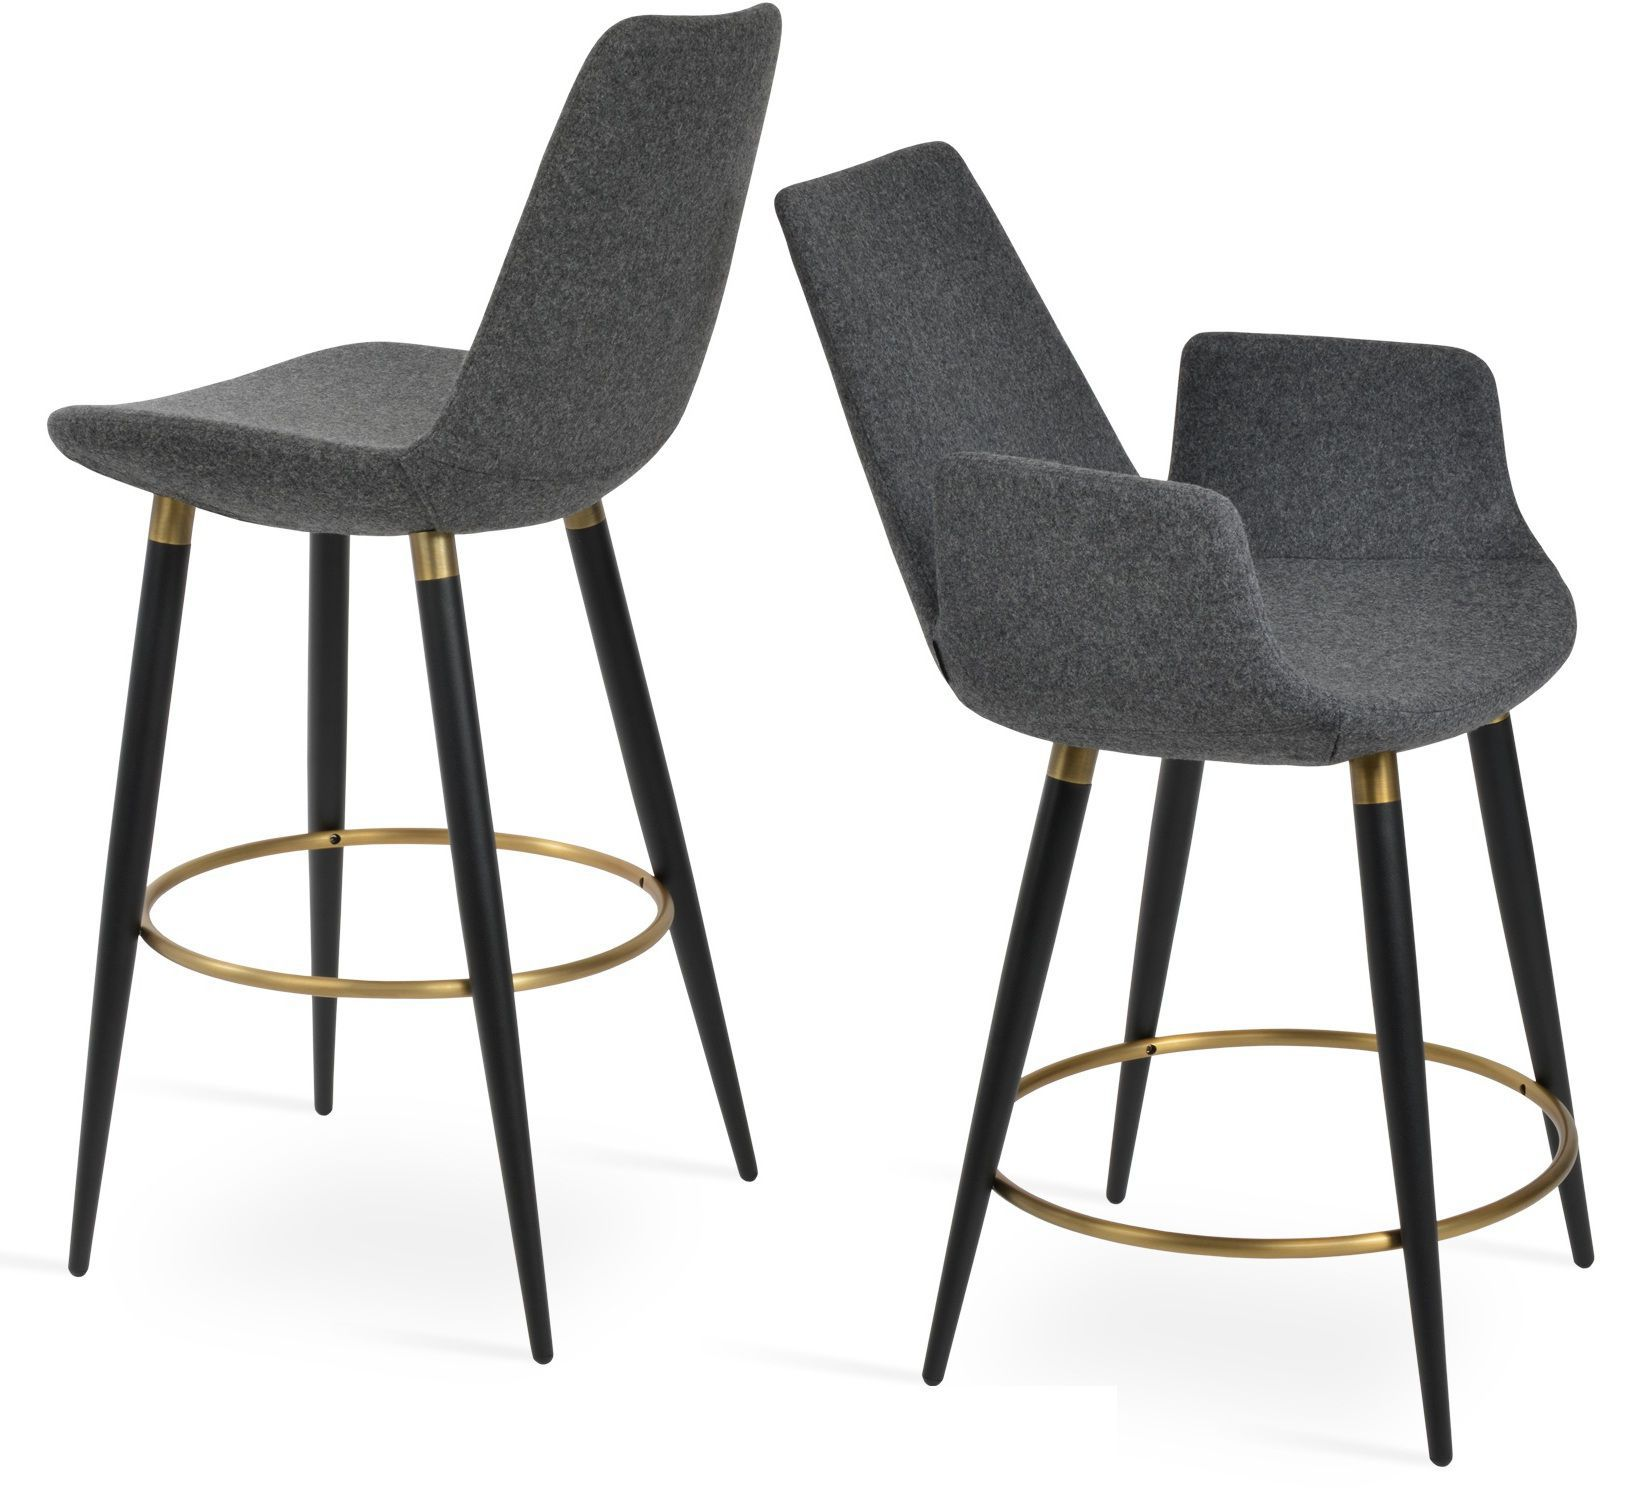 Contemporary bar chair - EIFFEL - sohoConcept - upholstered / with